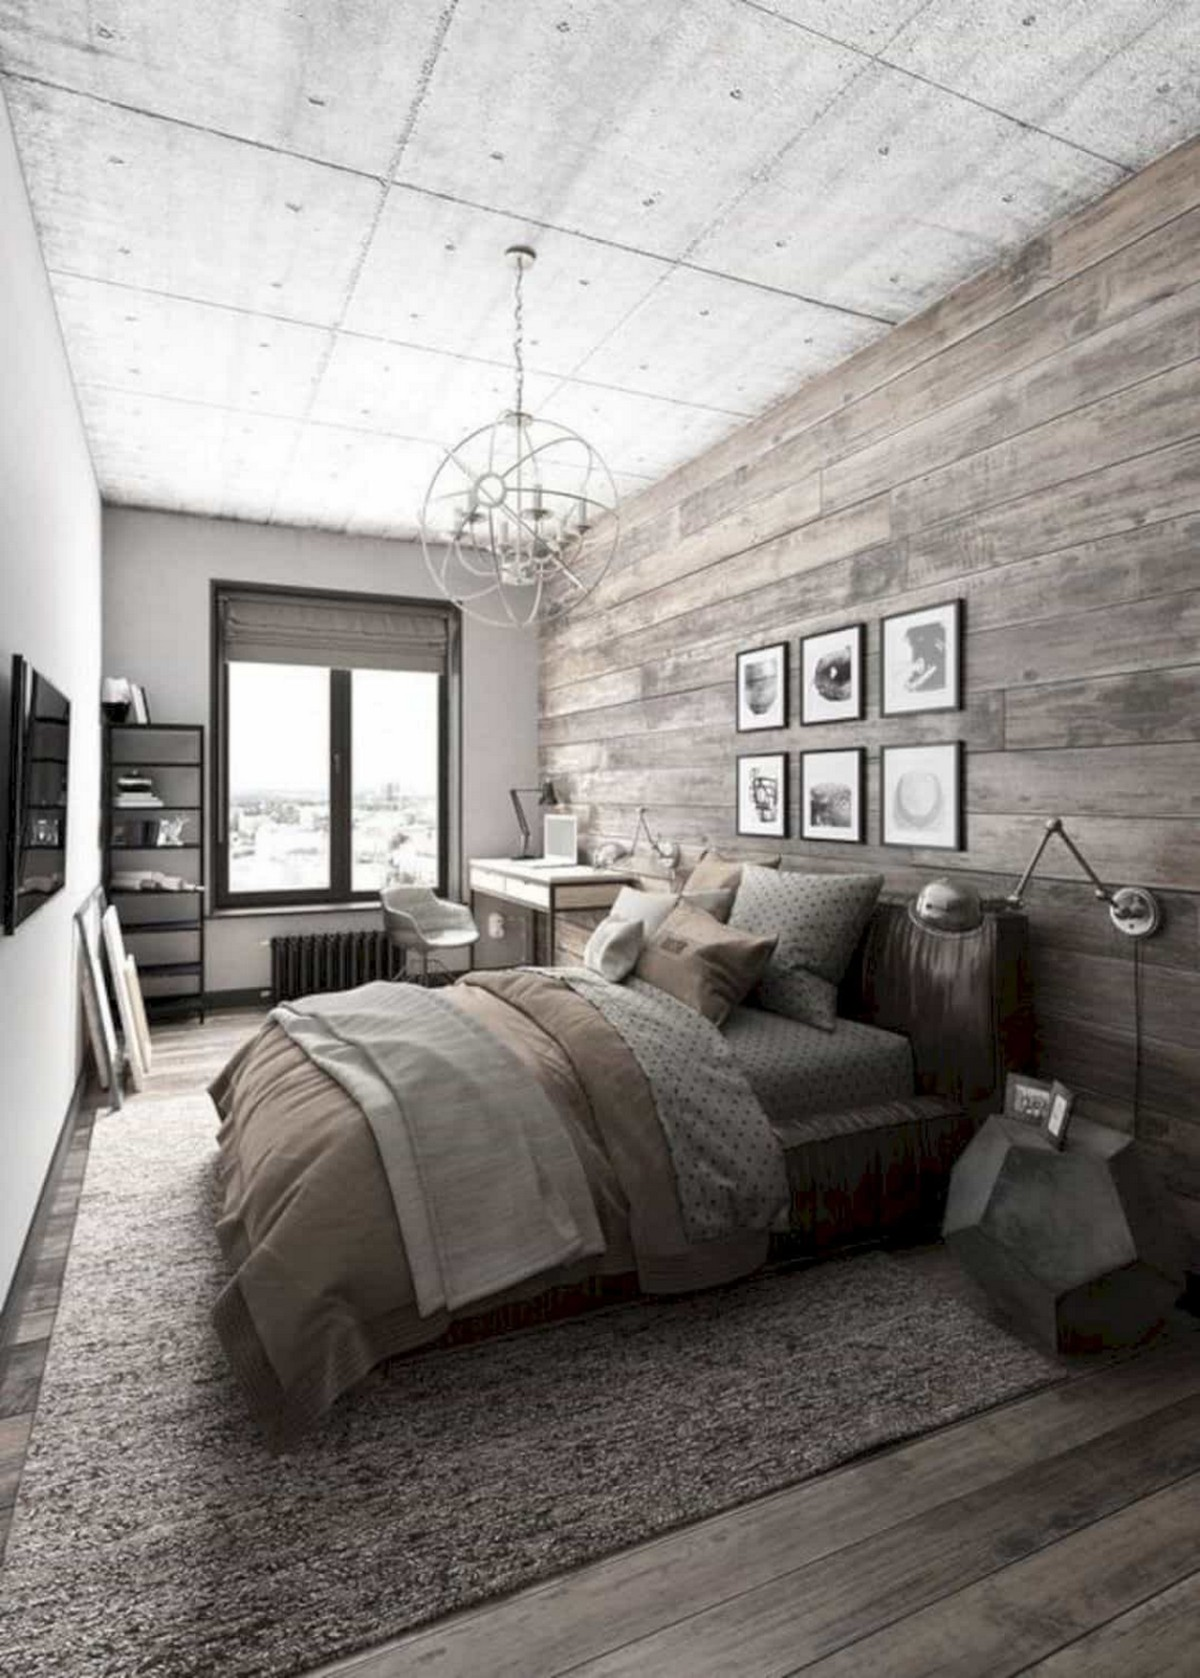 64 Rustic Bedroom Furniture How to Look Elegance Home Decor 20